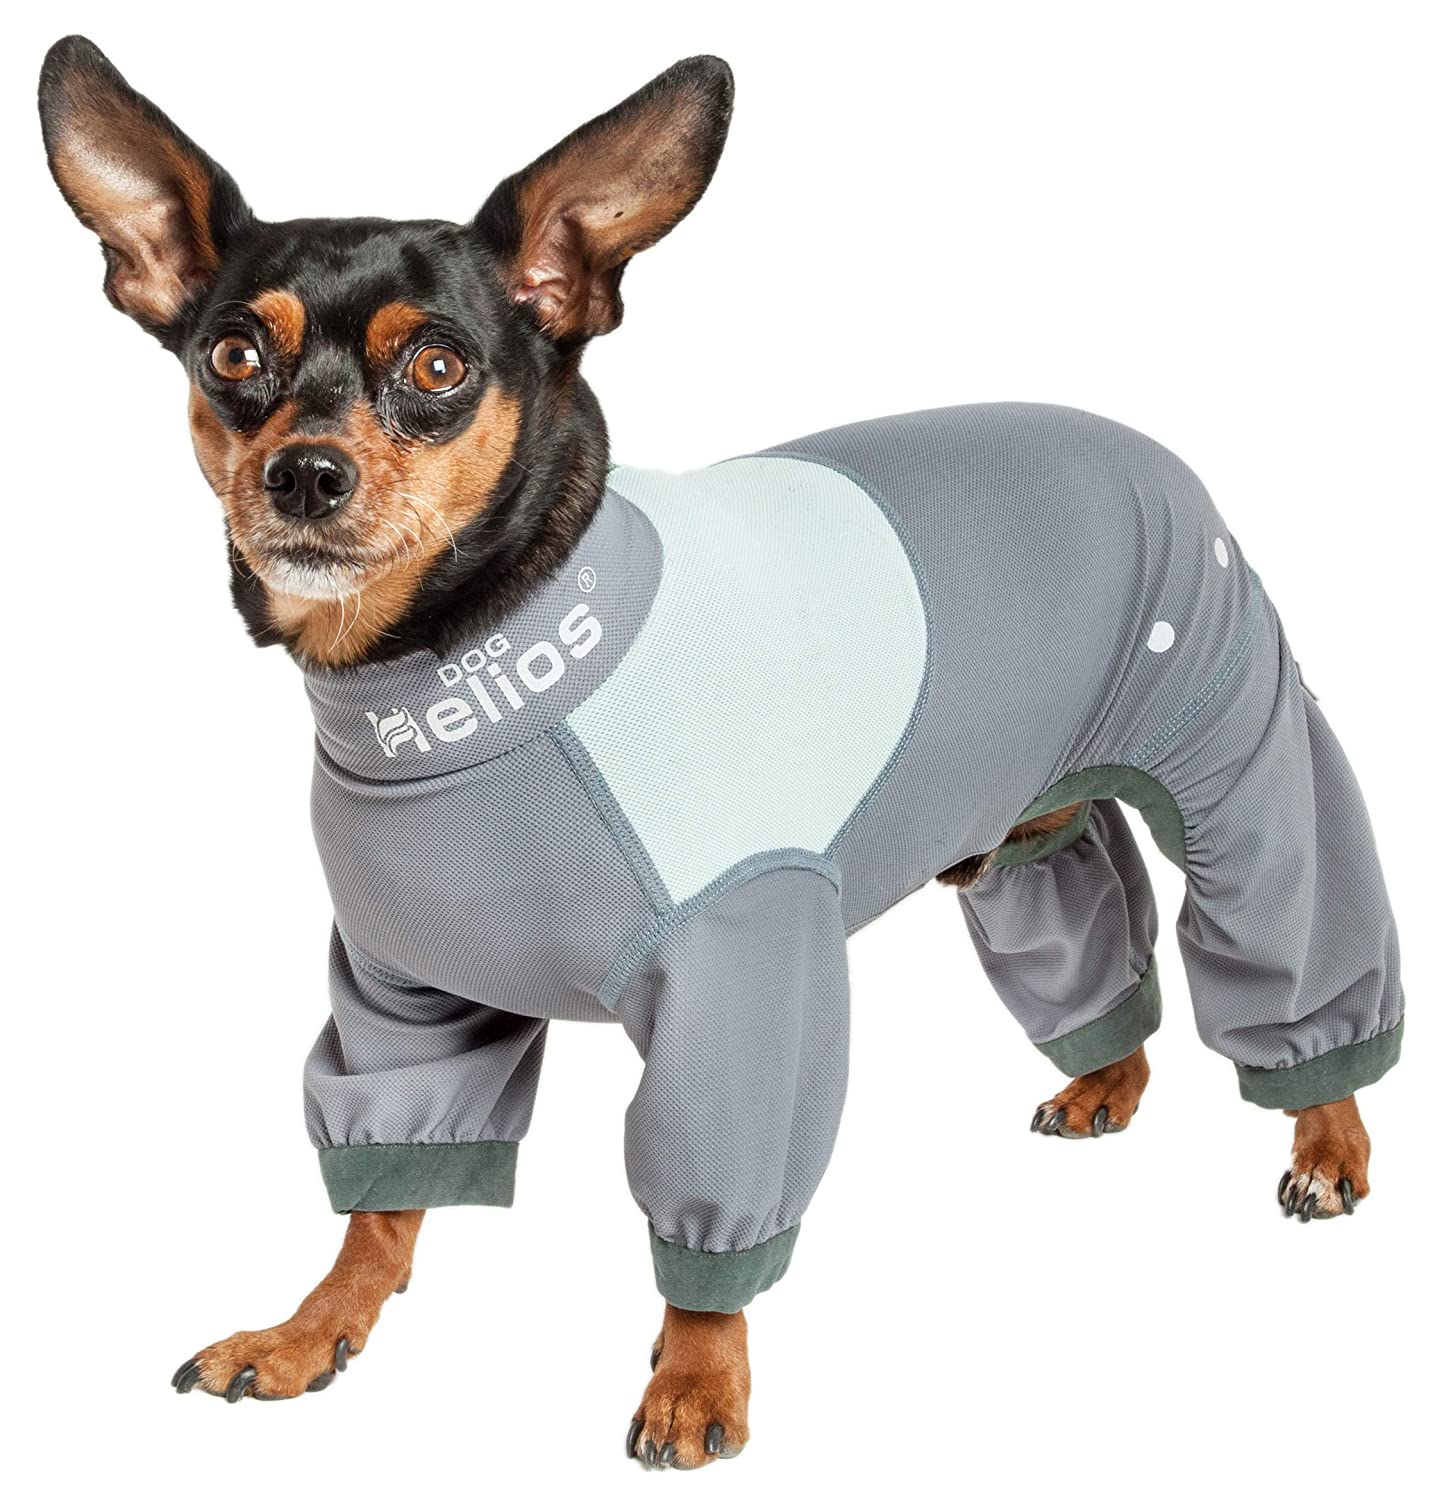 Dog Helios Tail Runner' Lightweight 4-Way-Stretch Breathable Full Bodied Performance Dog Track Suit, Large, Grey